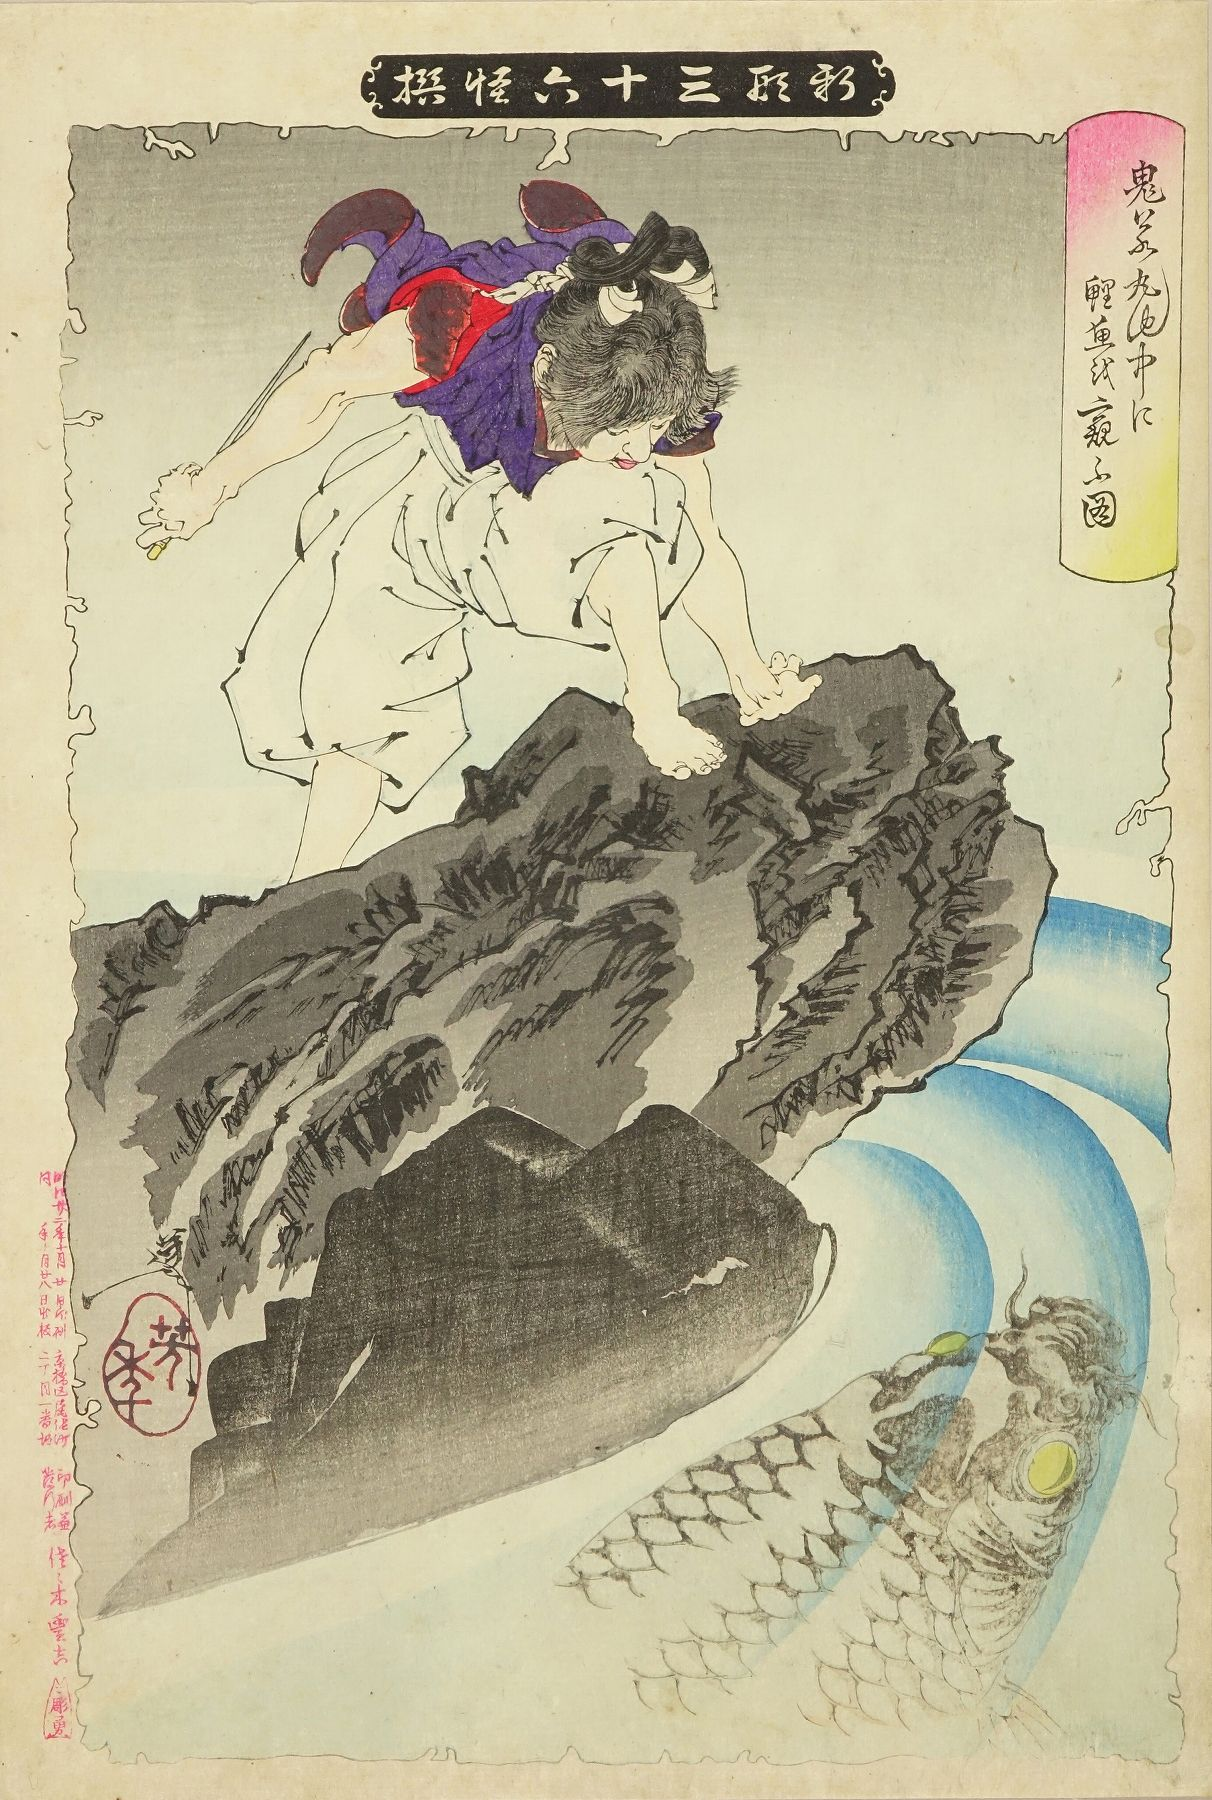 YOSHITOSHI <i>Sakurada mongai no hen</i> (Samurai assassination outside Sakurada Gate), six sheets, complete